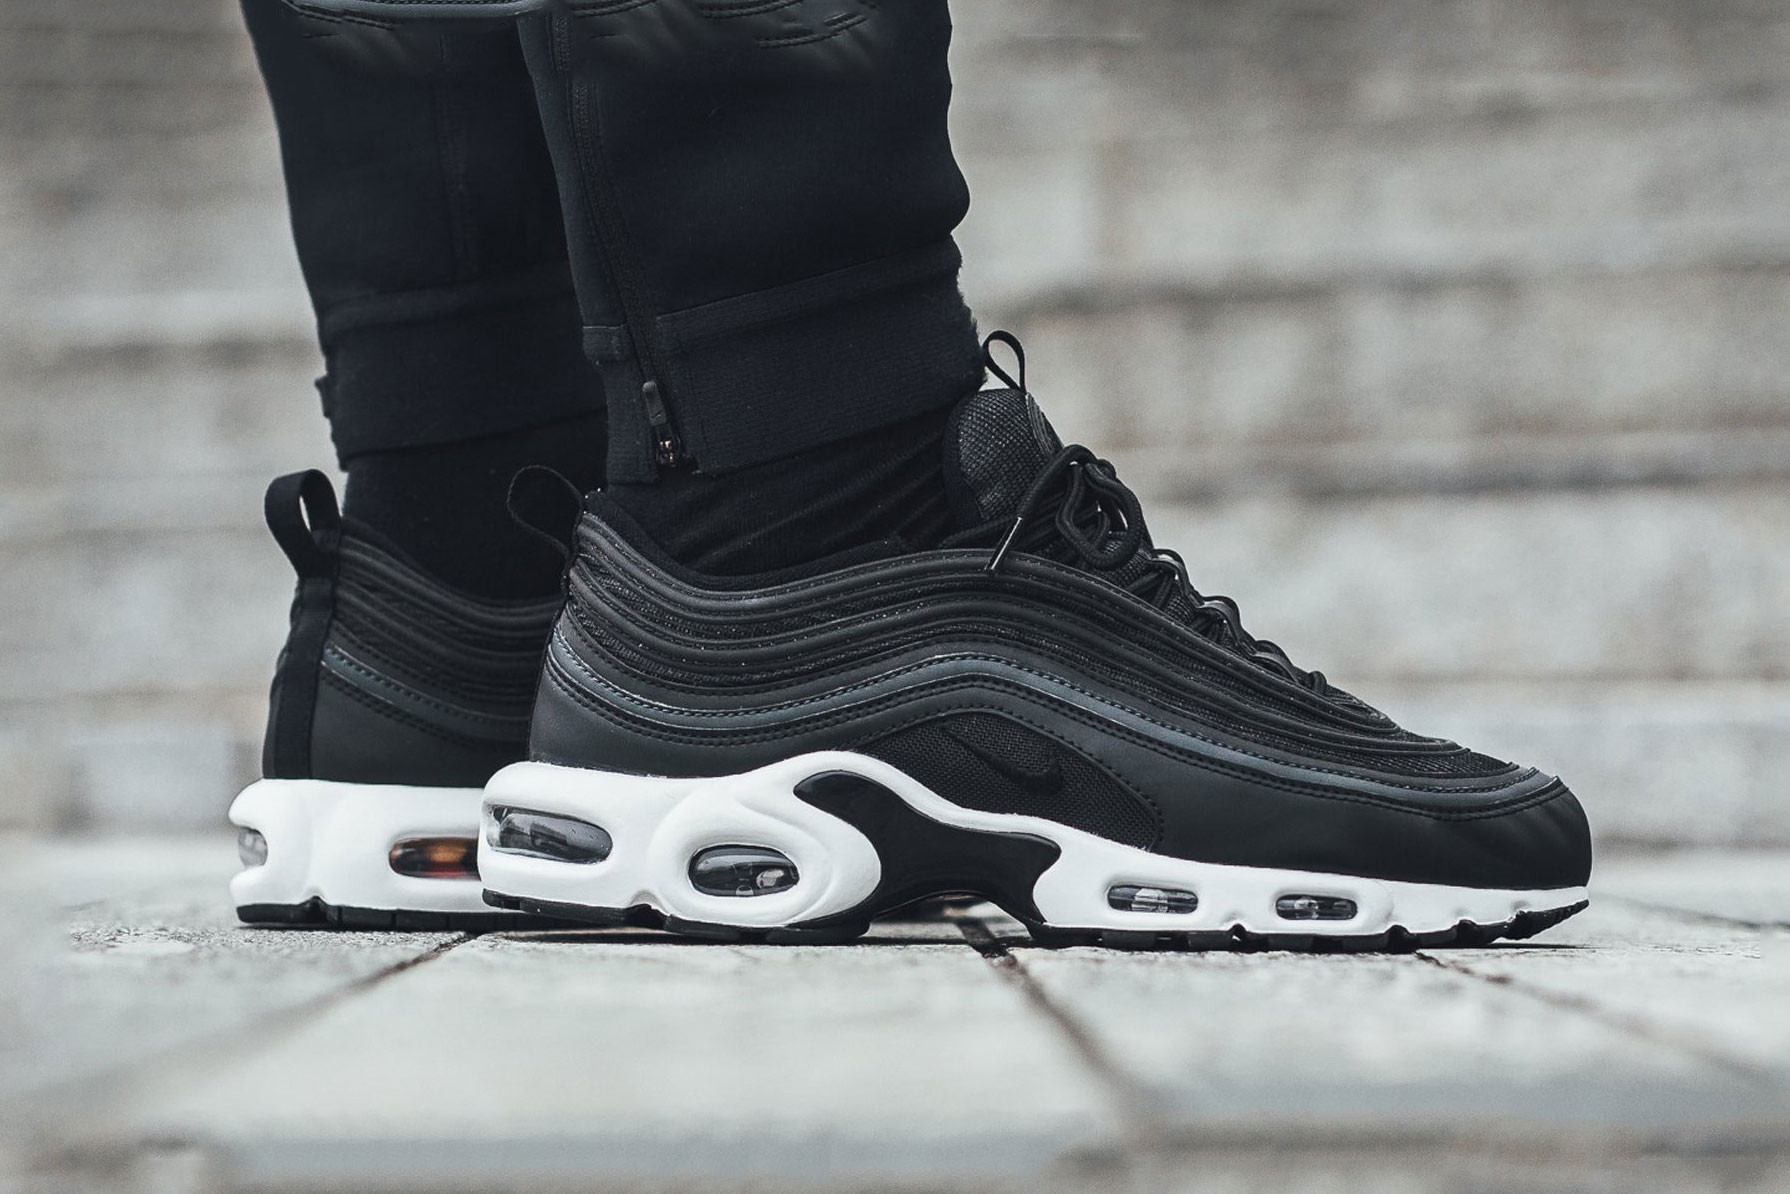 Nike Air Max Plus 97 Tune Up Gears for